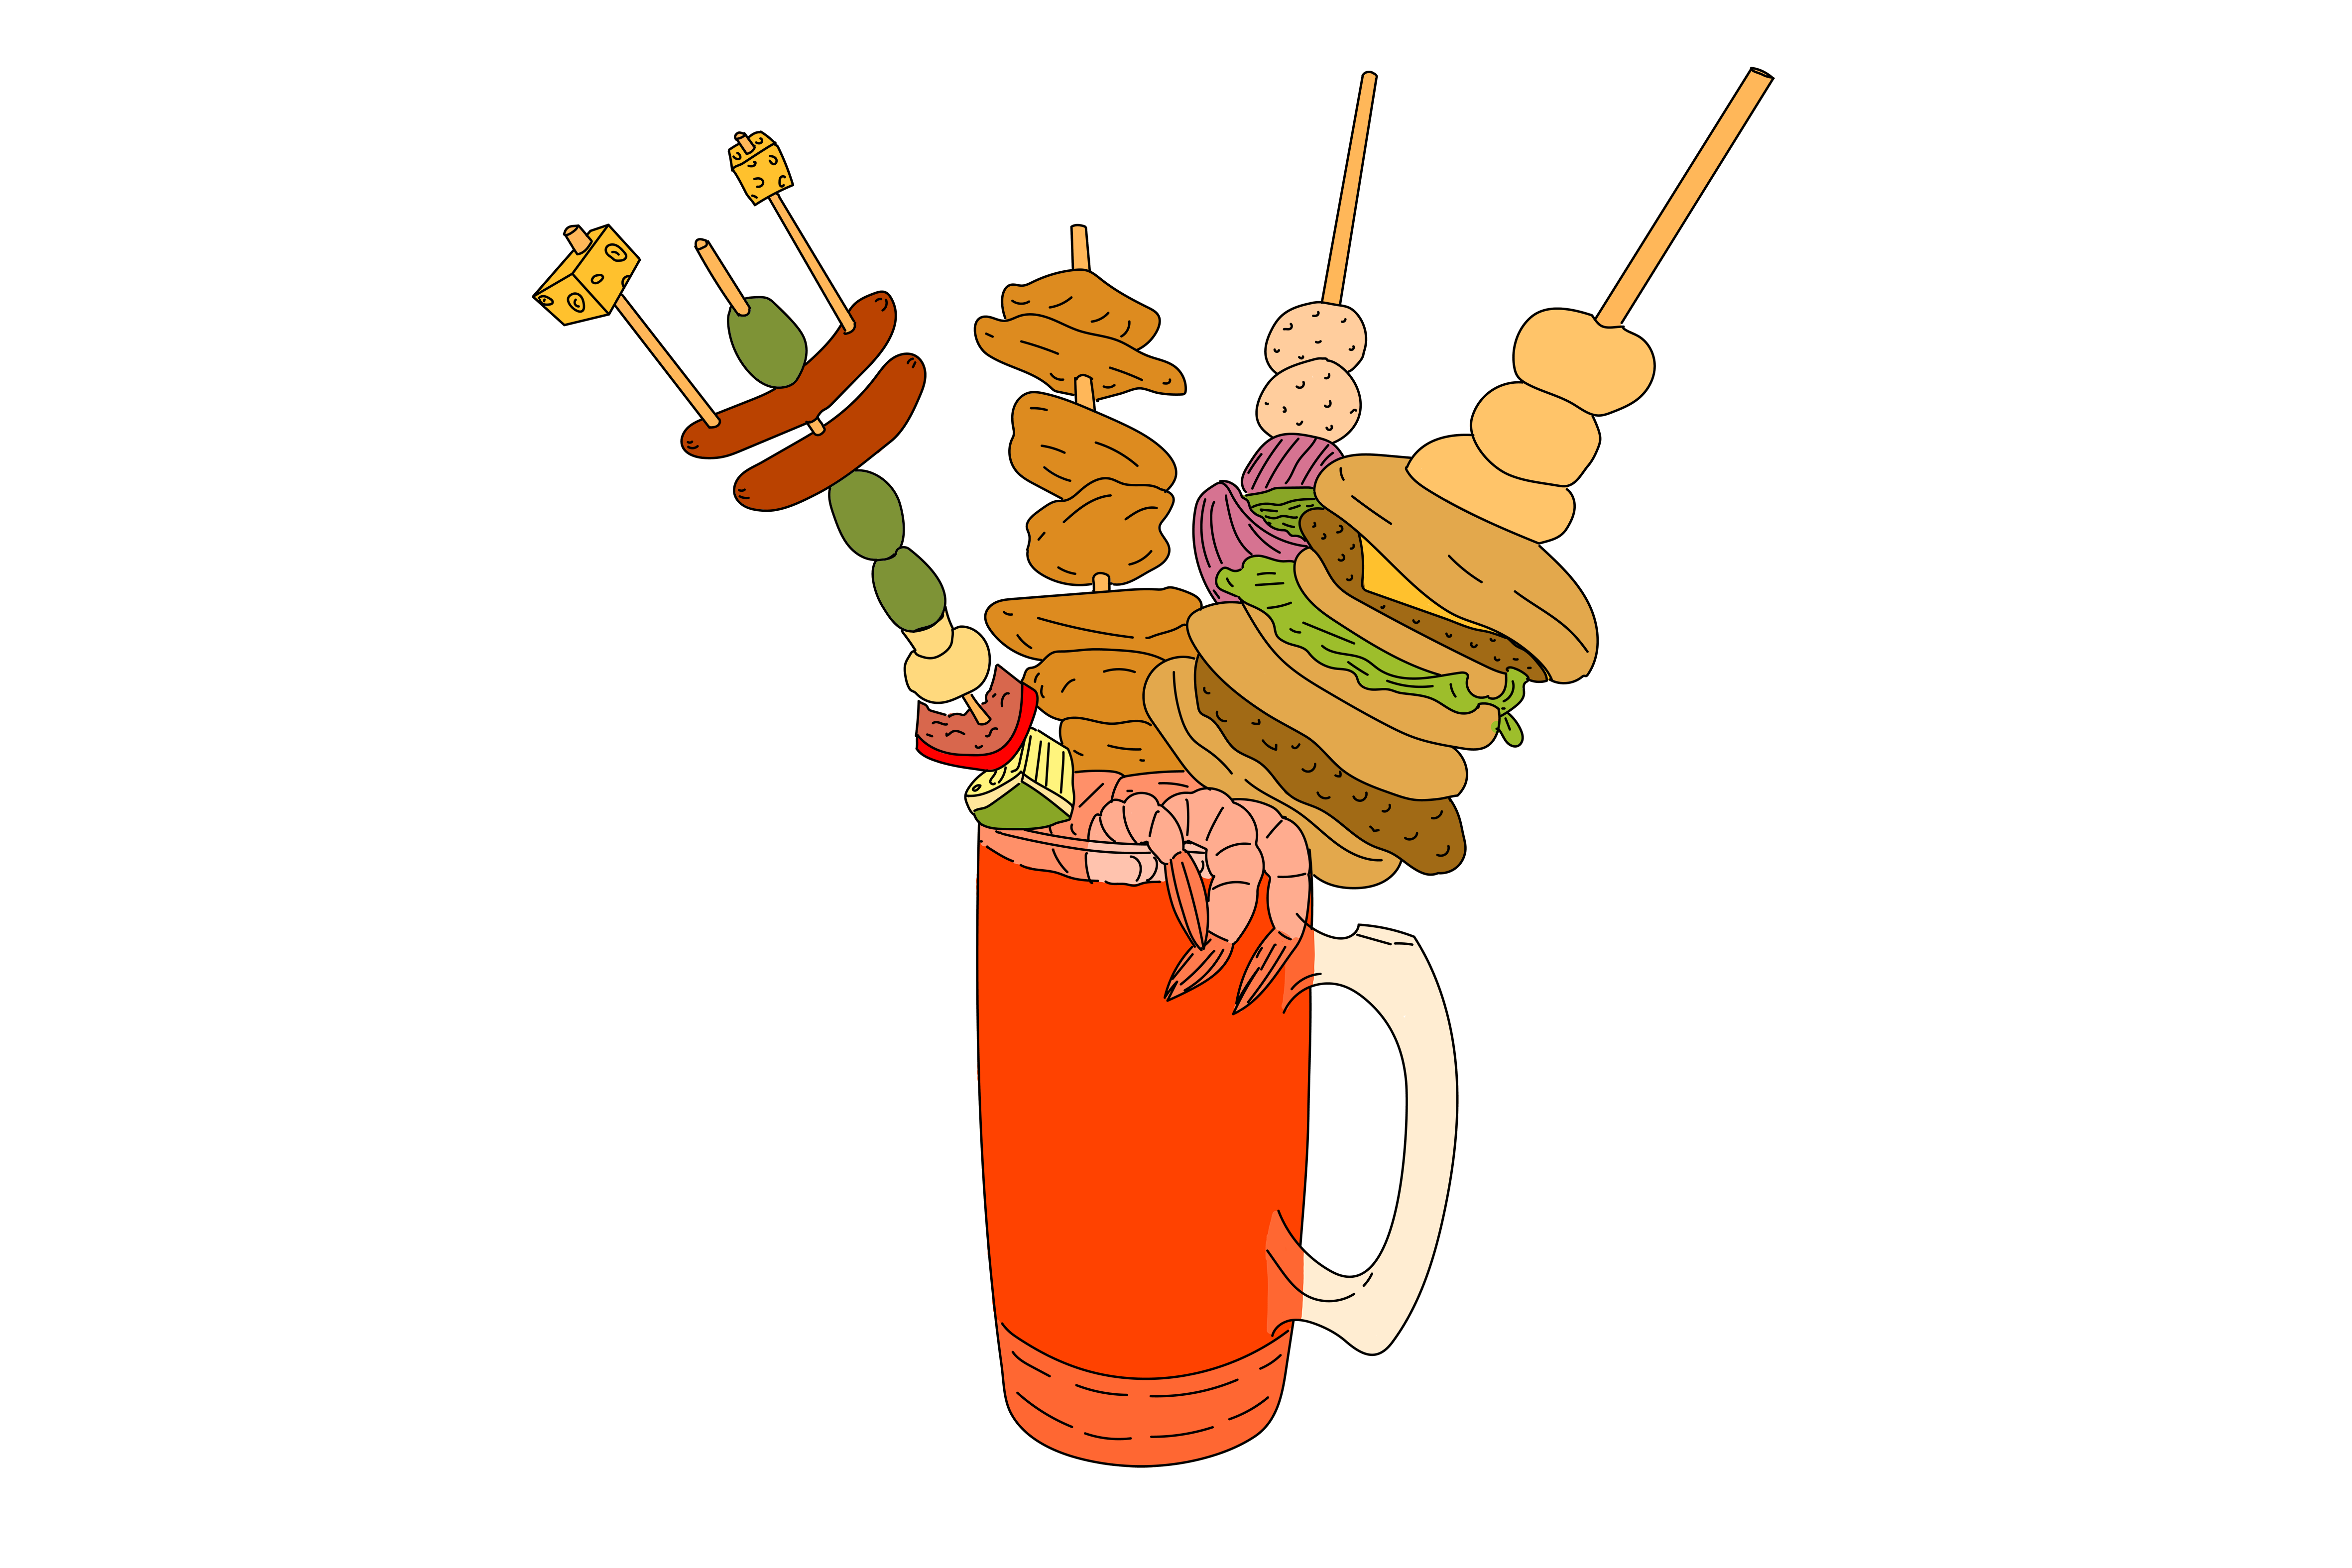 A Bloody Mary, with all the accoutrements.